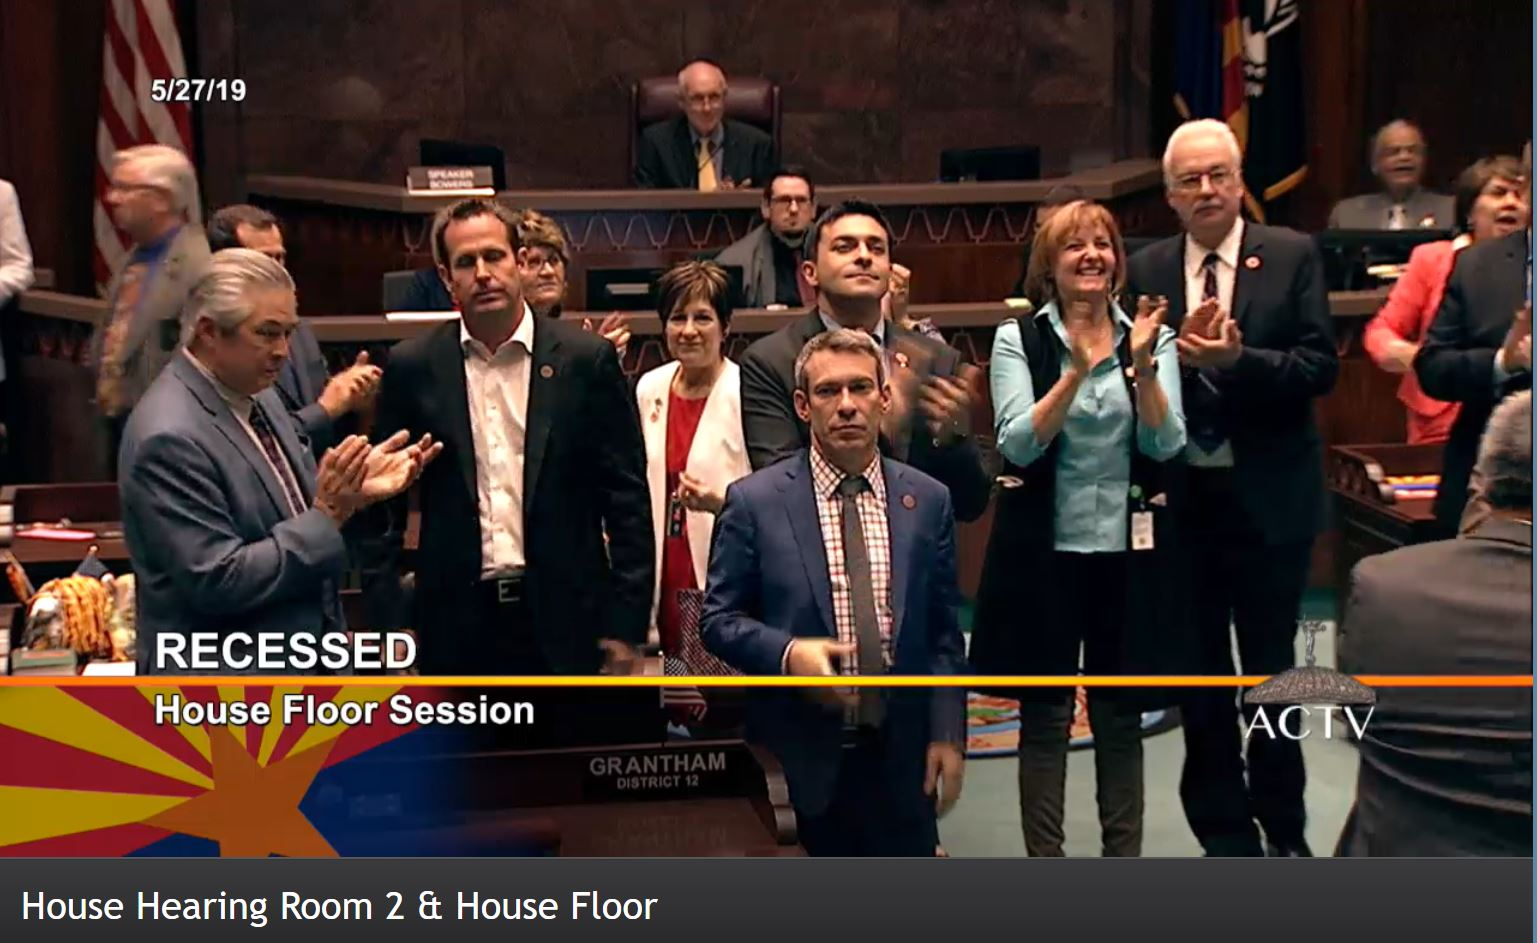 The House Of Representatives After Approving The Budget And Related Bills And Adjourning Sine Die Early On Monday, May 28, 2019. Photo Courtesy Of Arizona Capitol Television.